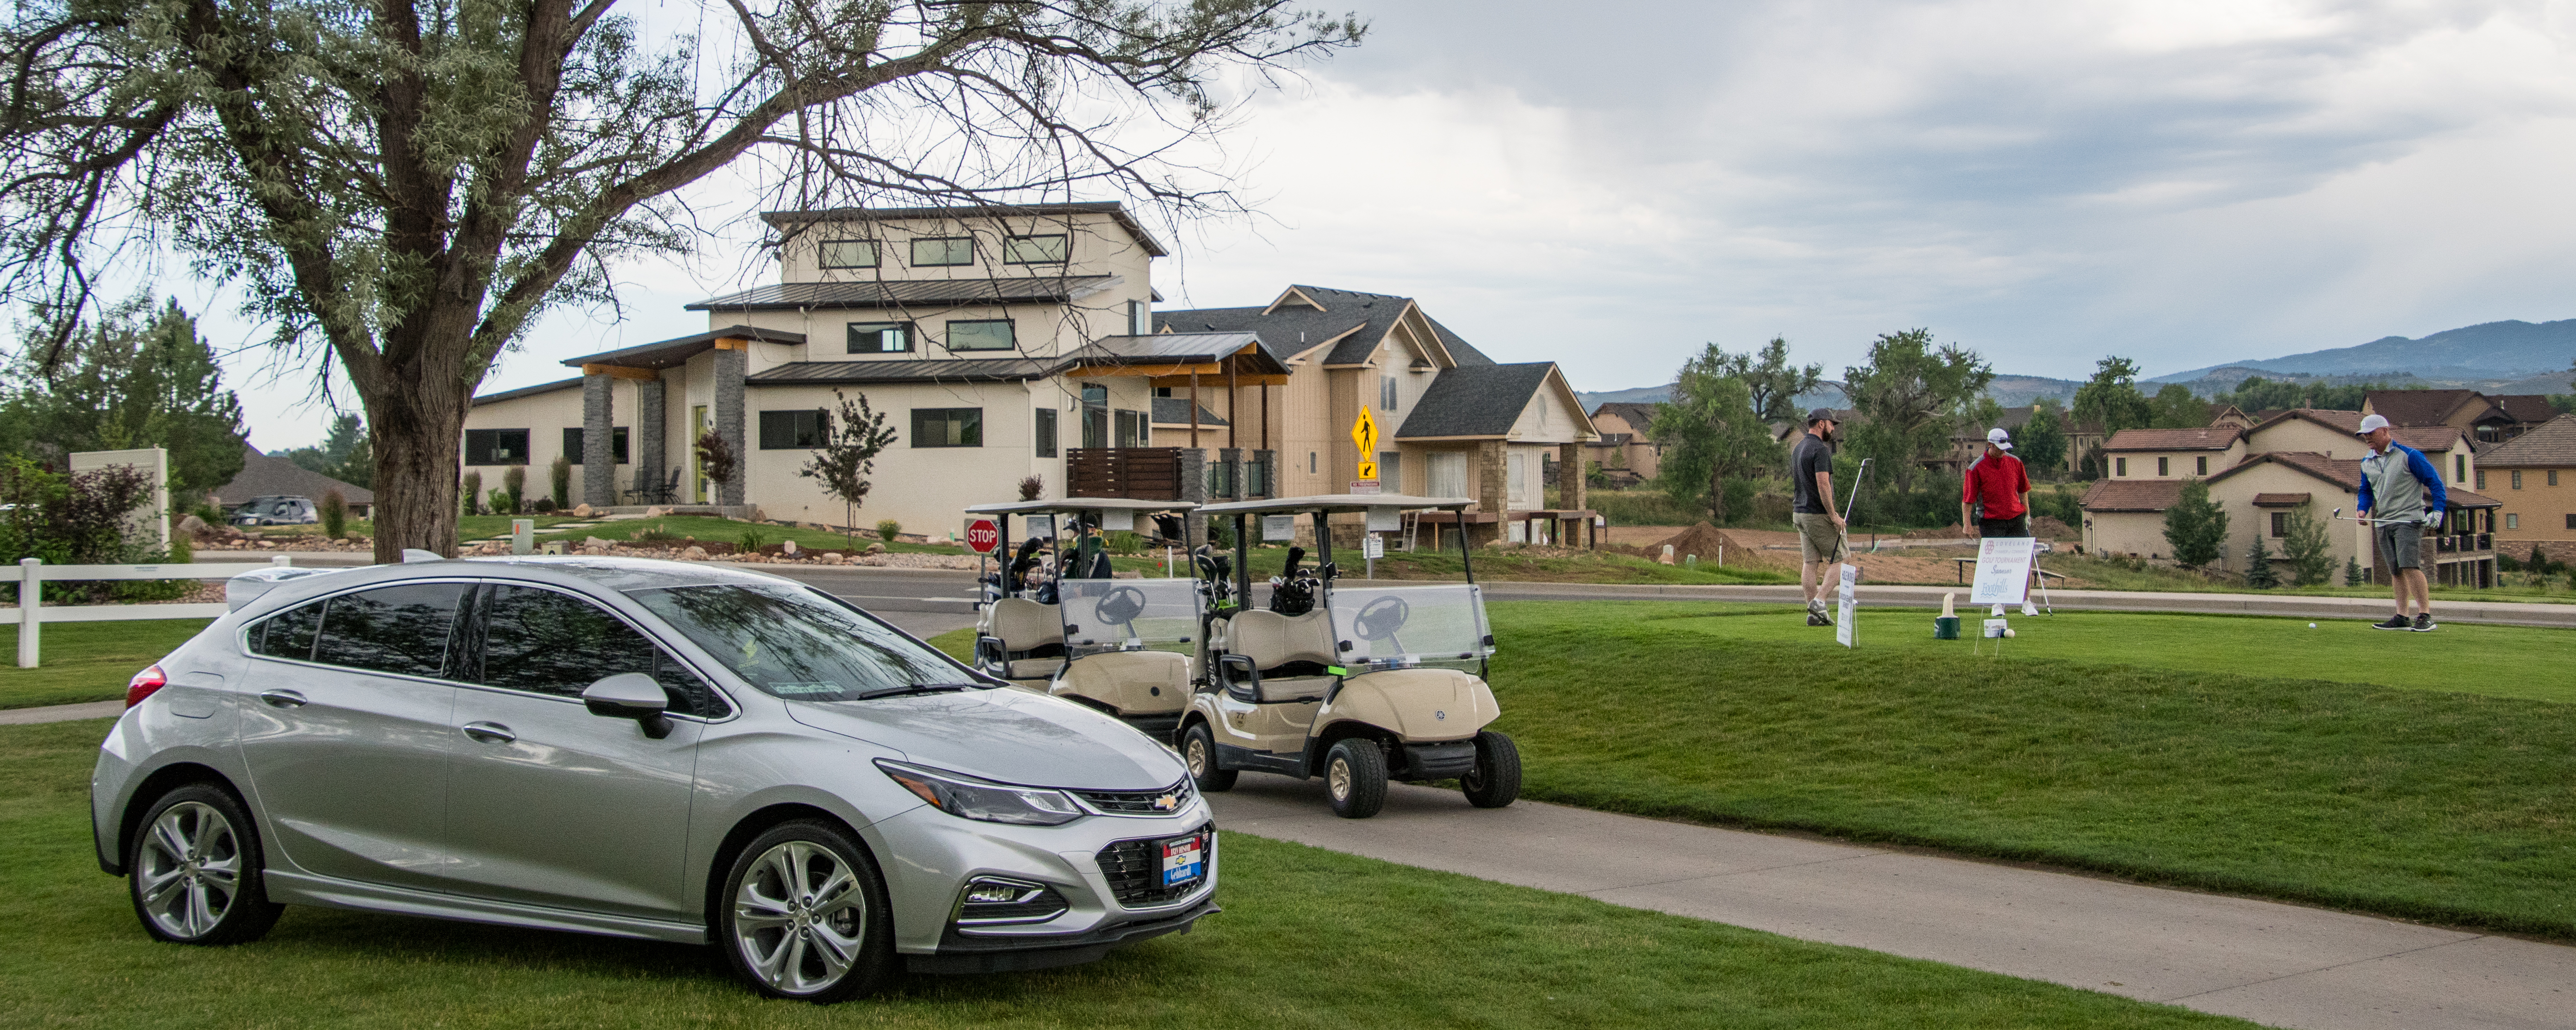 20180622LCCGolf DSC_5159untitled